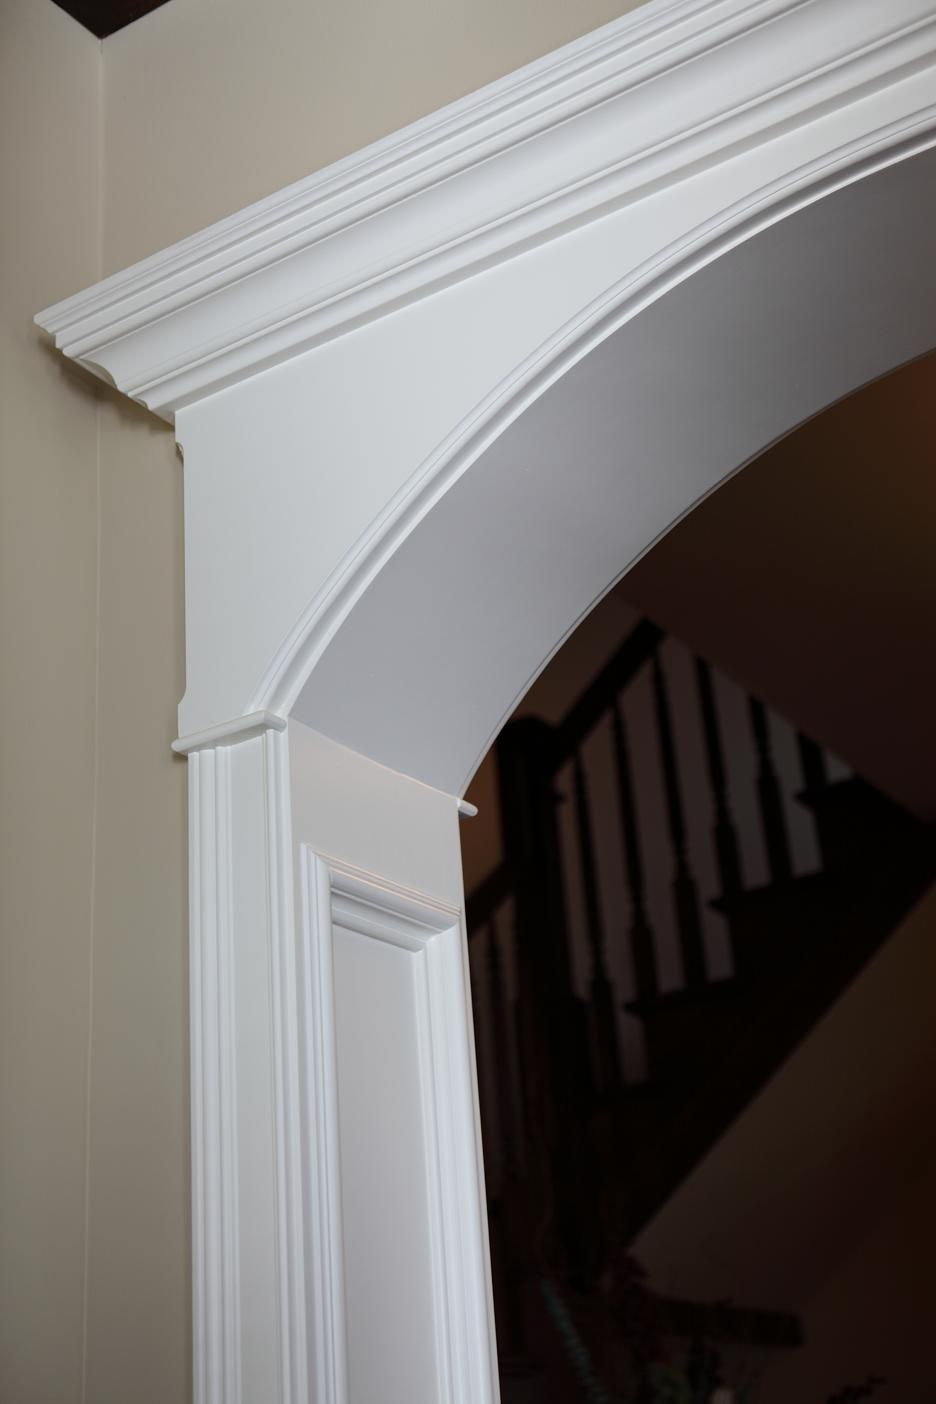 Battaglia Homes the very best in Interior Trim Part I crown